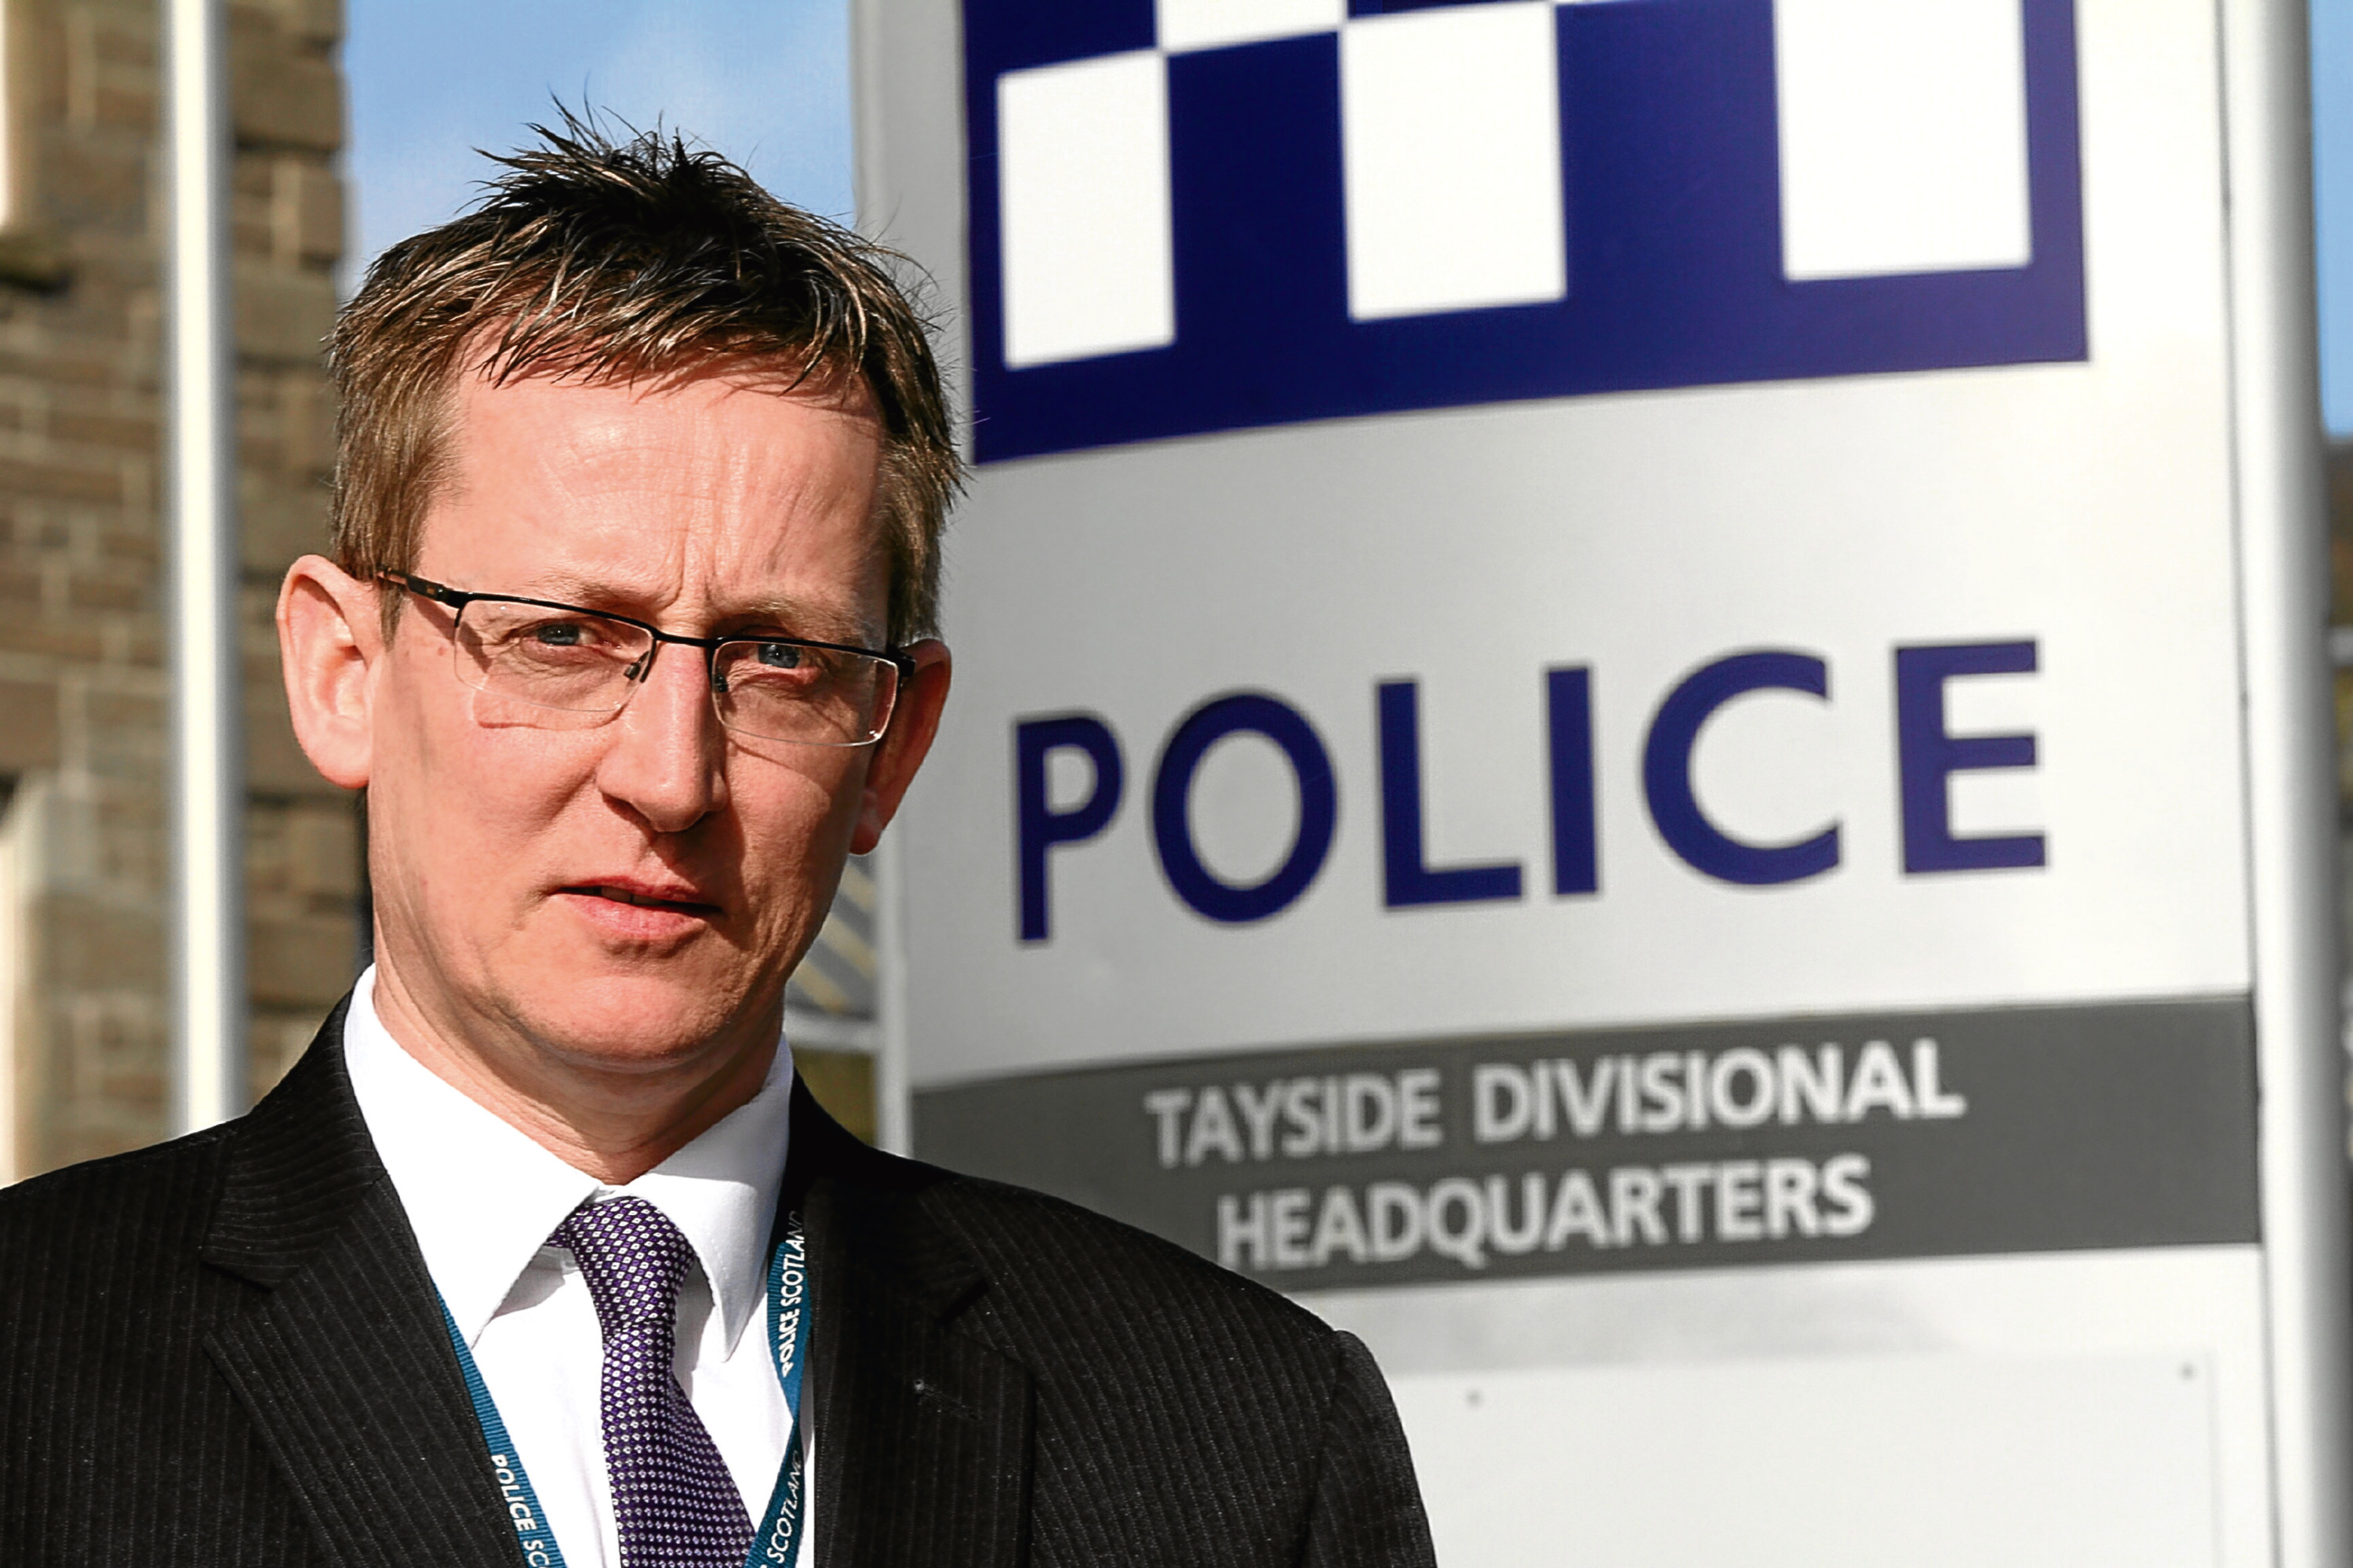 Detective Chief Inspector Iain Wales